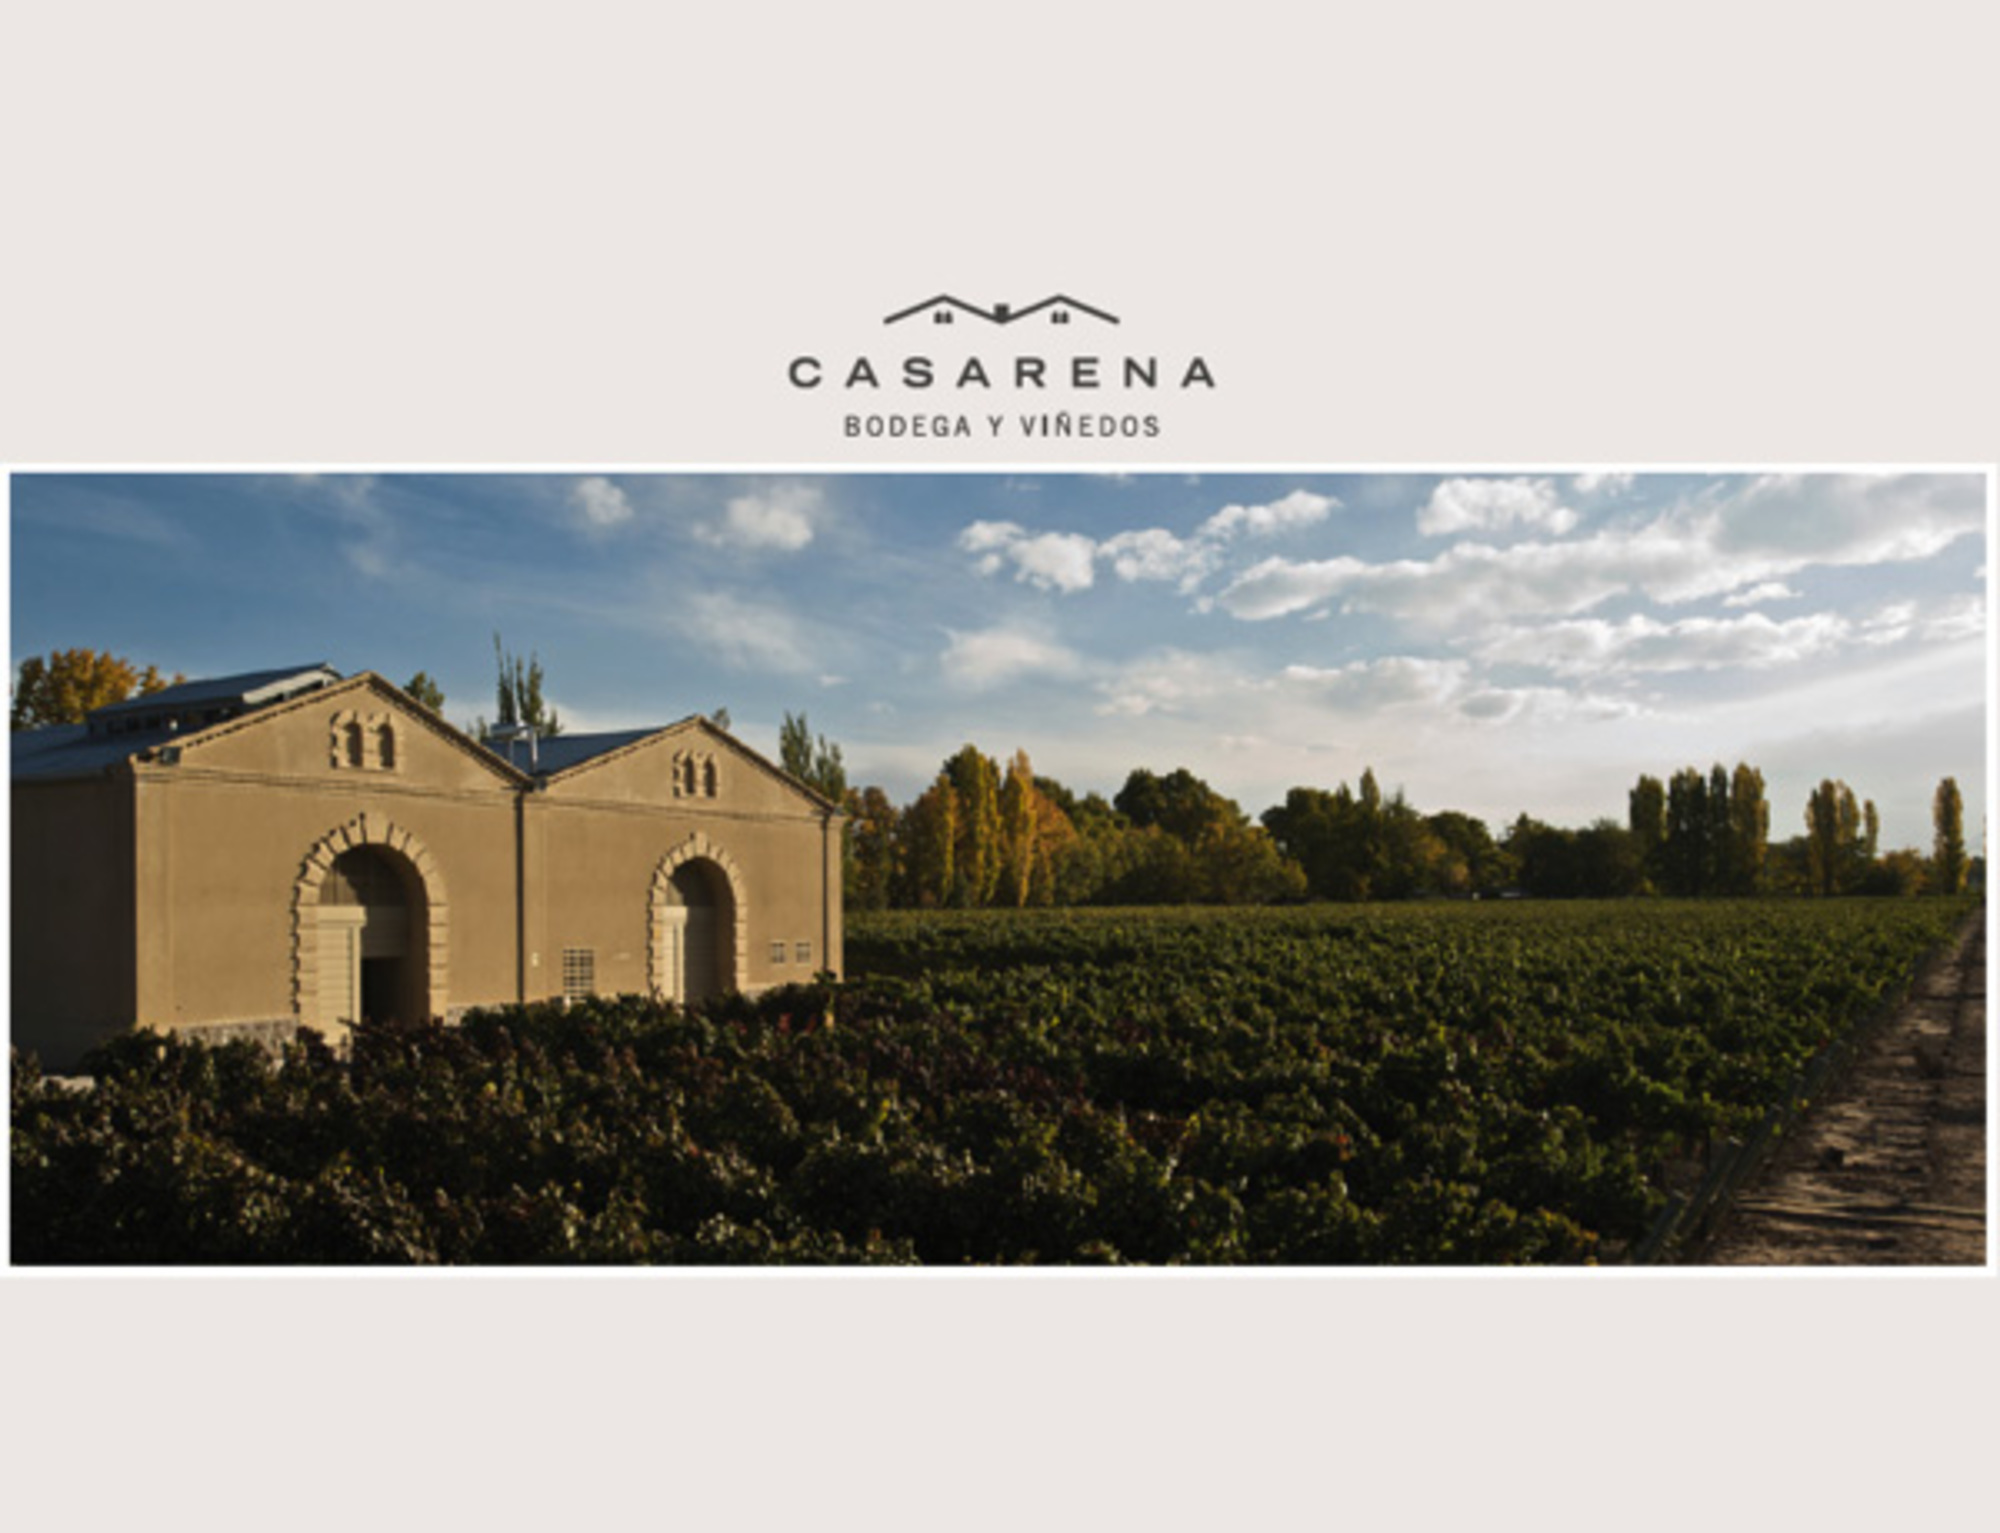 Casarena winery and vinyards